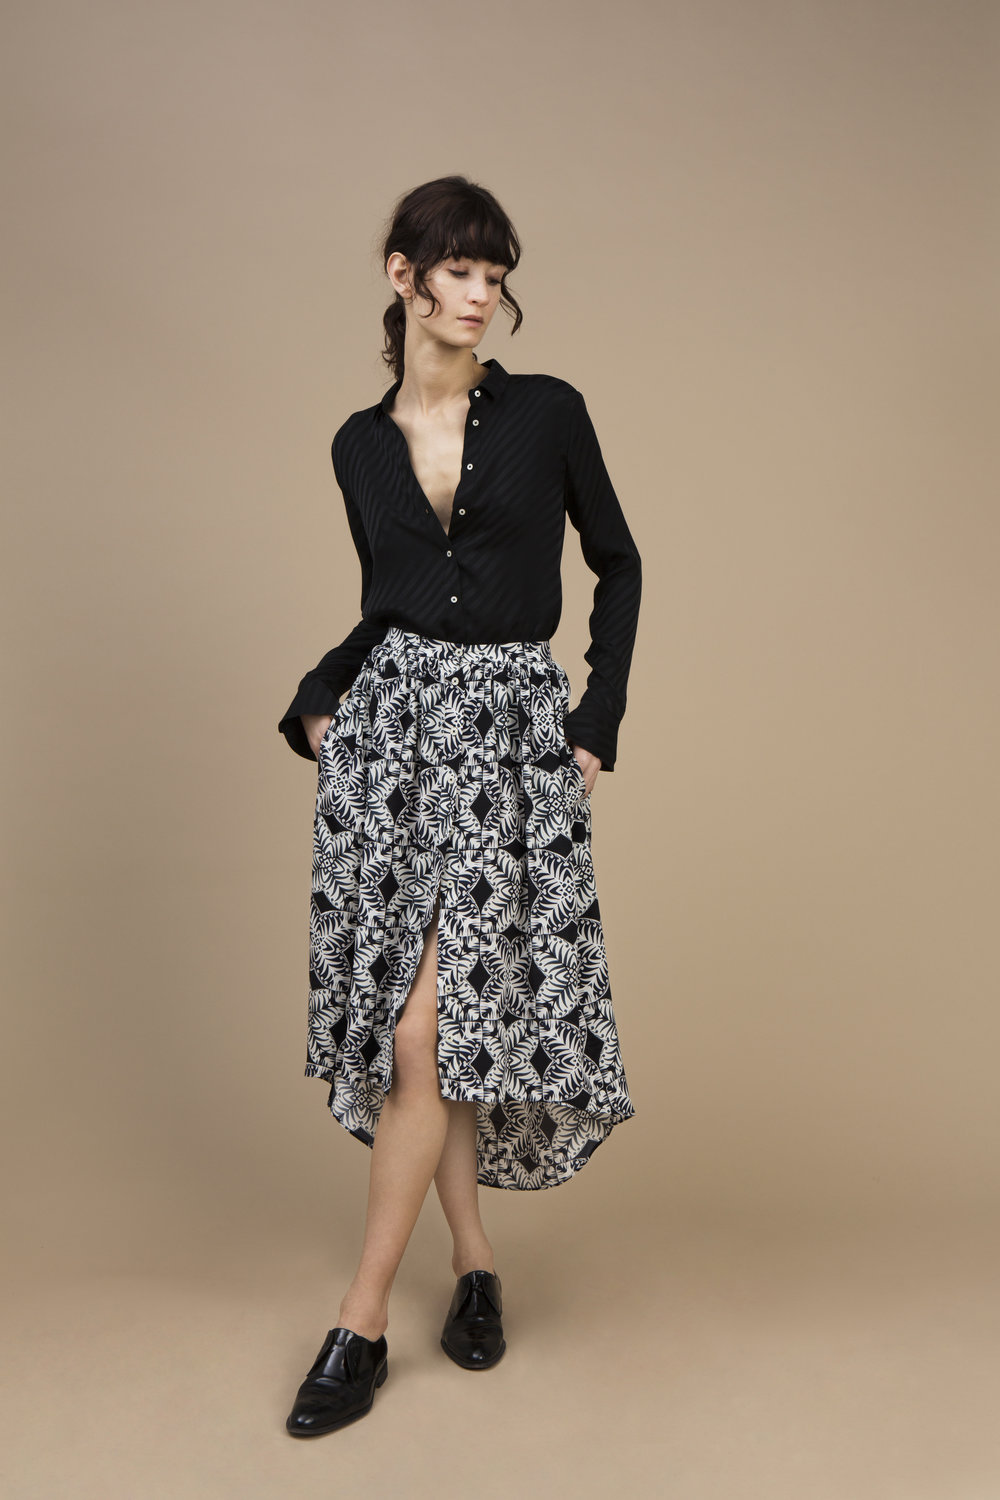 Crepe satin silk Small collar shirt — Stripy Black and Long and asymmetric skirt in crepe silk — Kaleidoscope